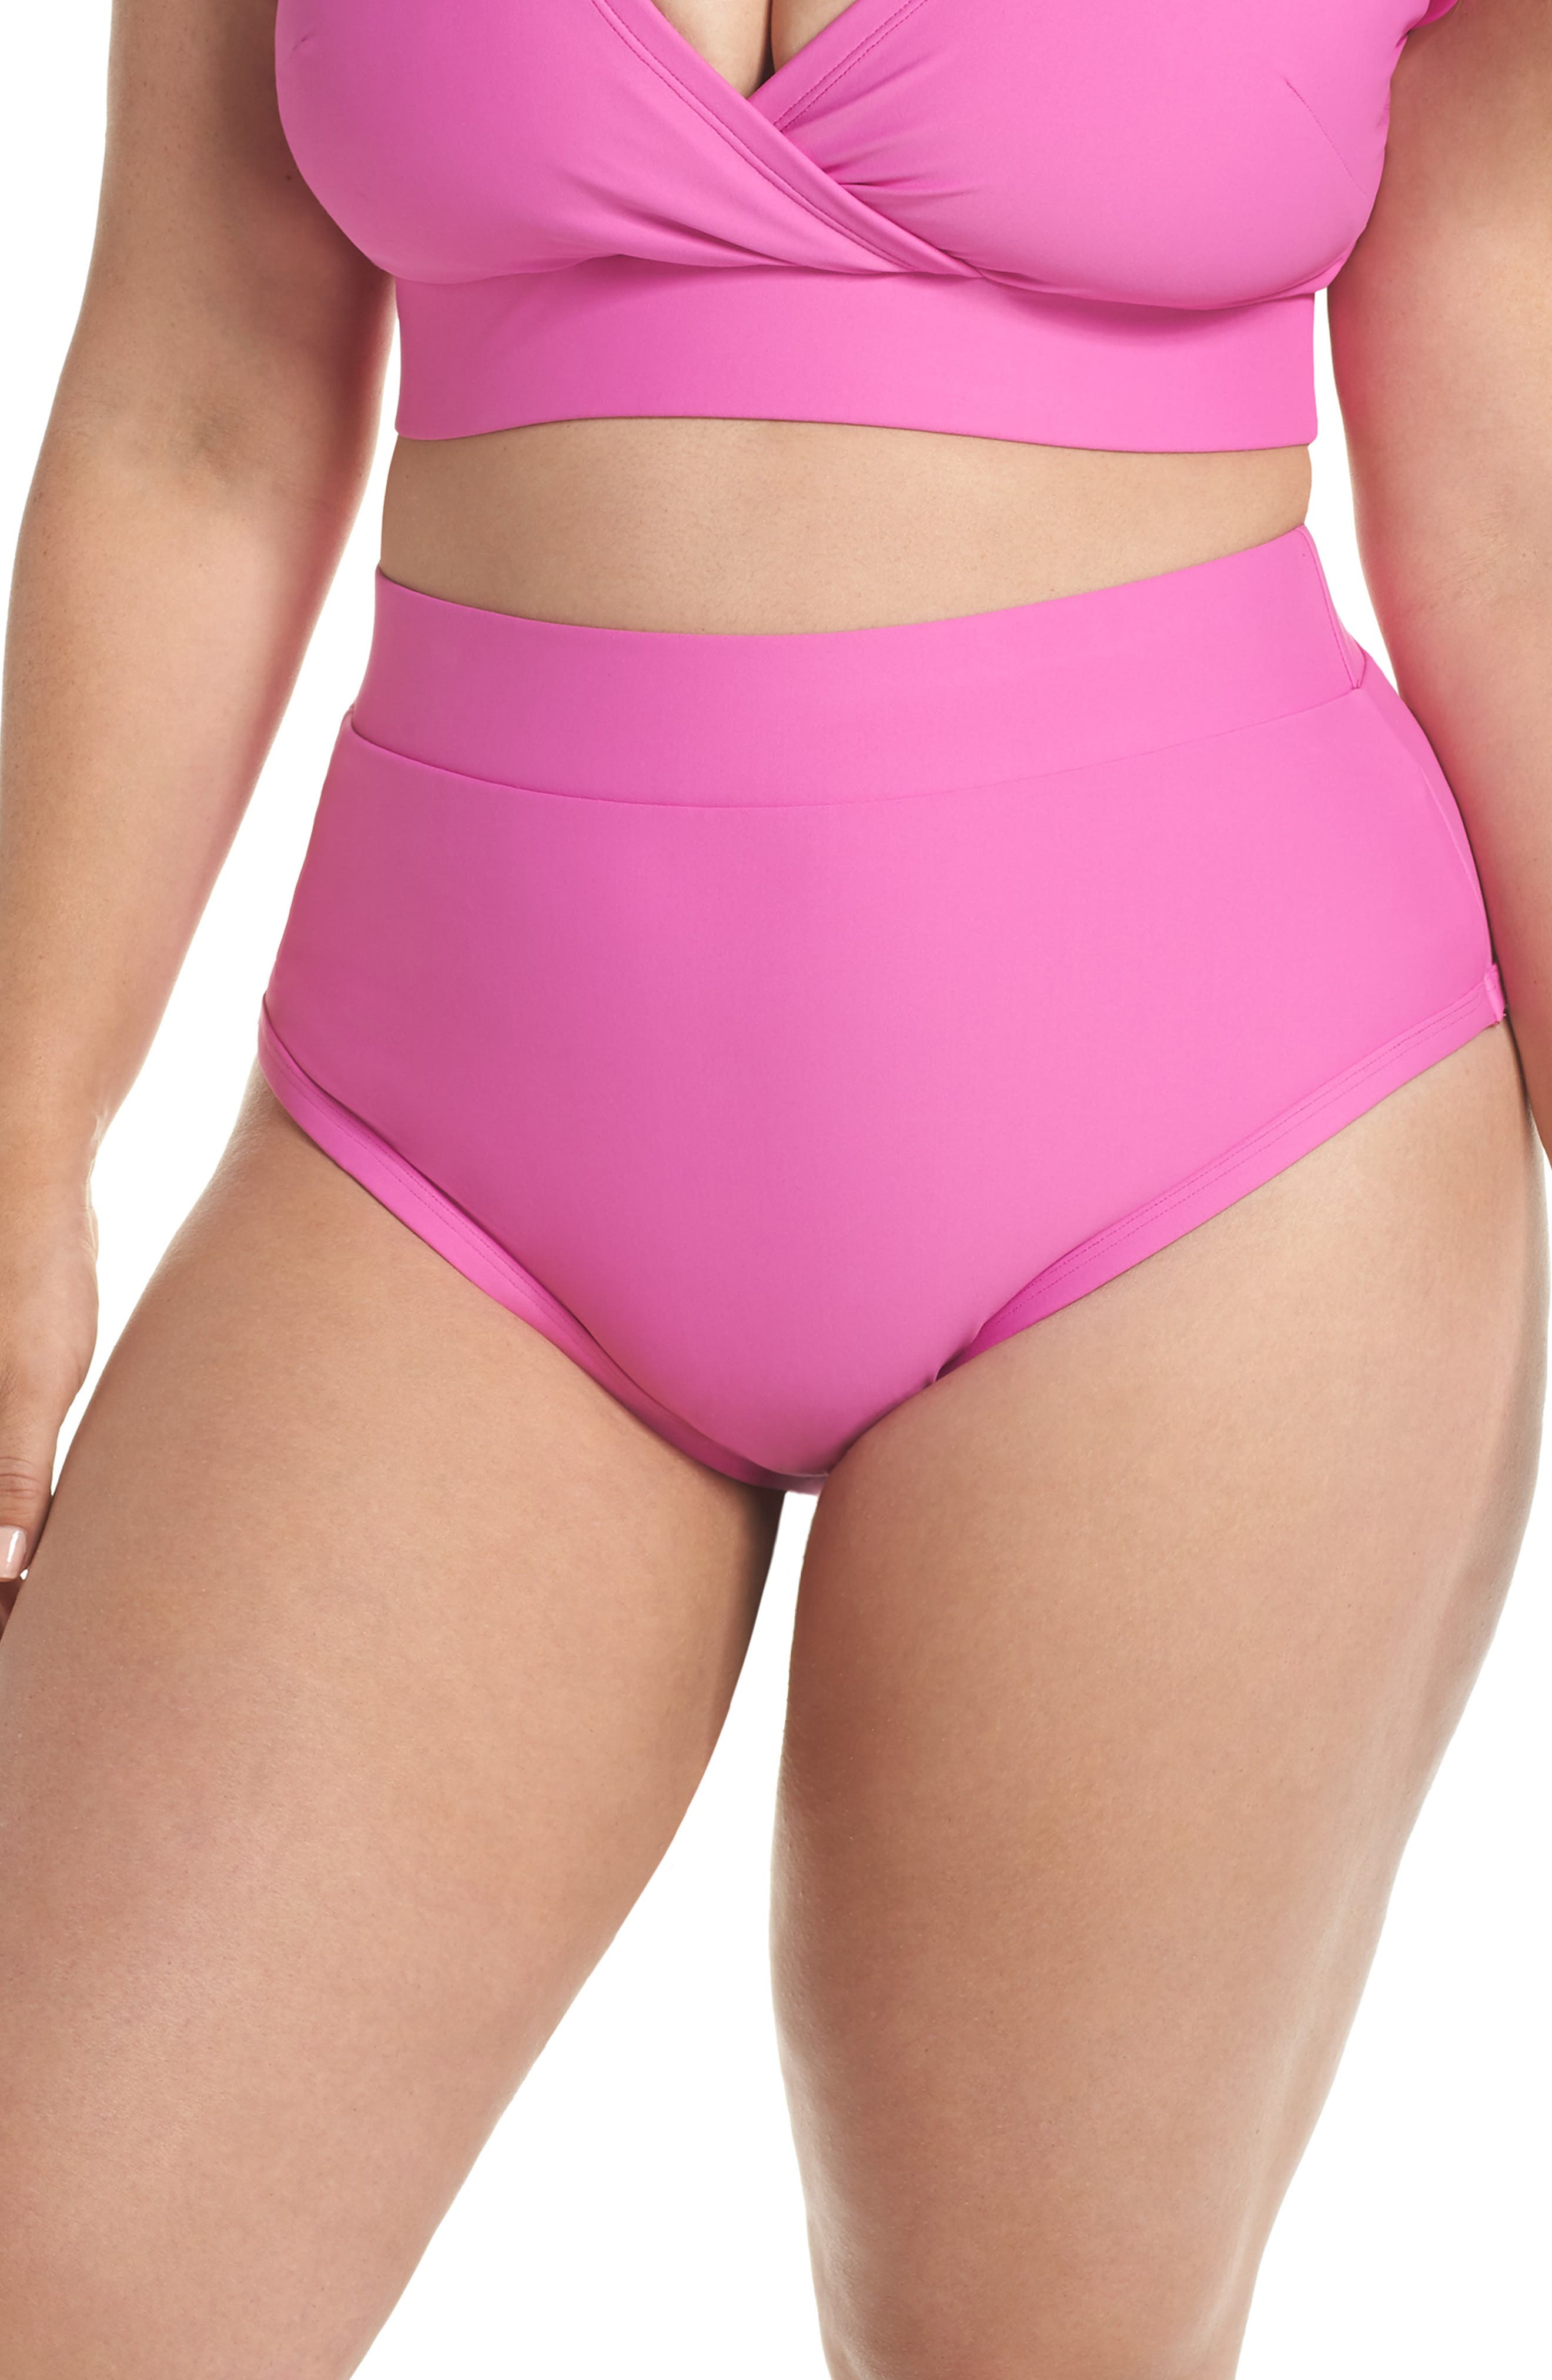 Plus Size Alpine Butterfly Lover High Waist Bikini Bottoms, Pink